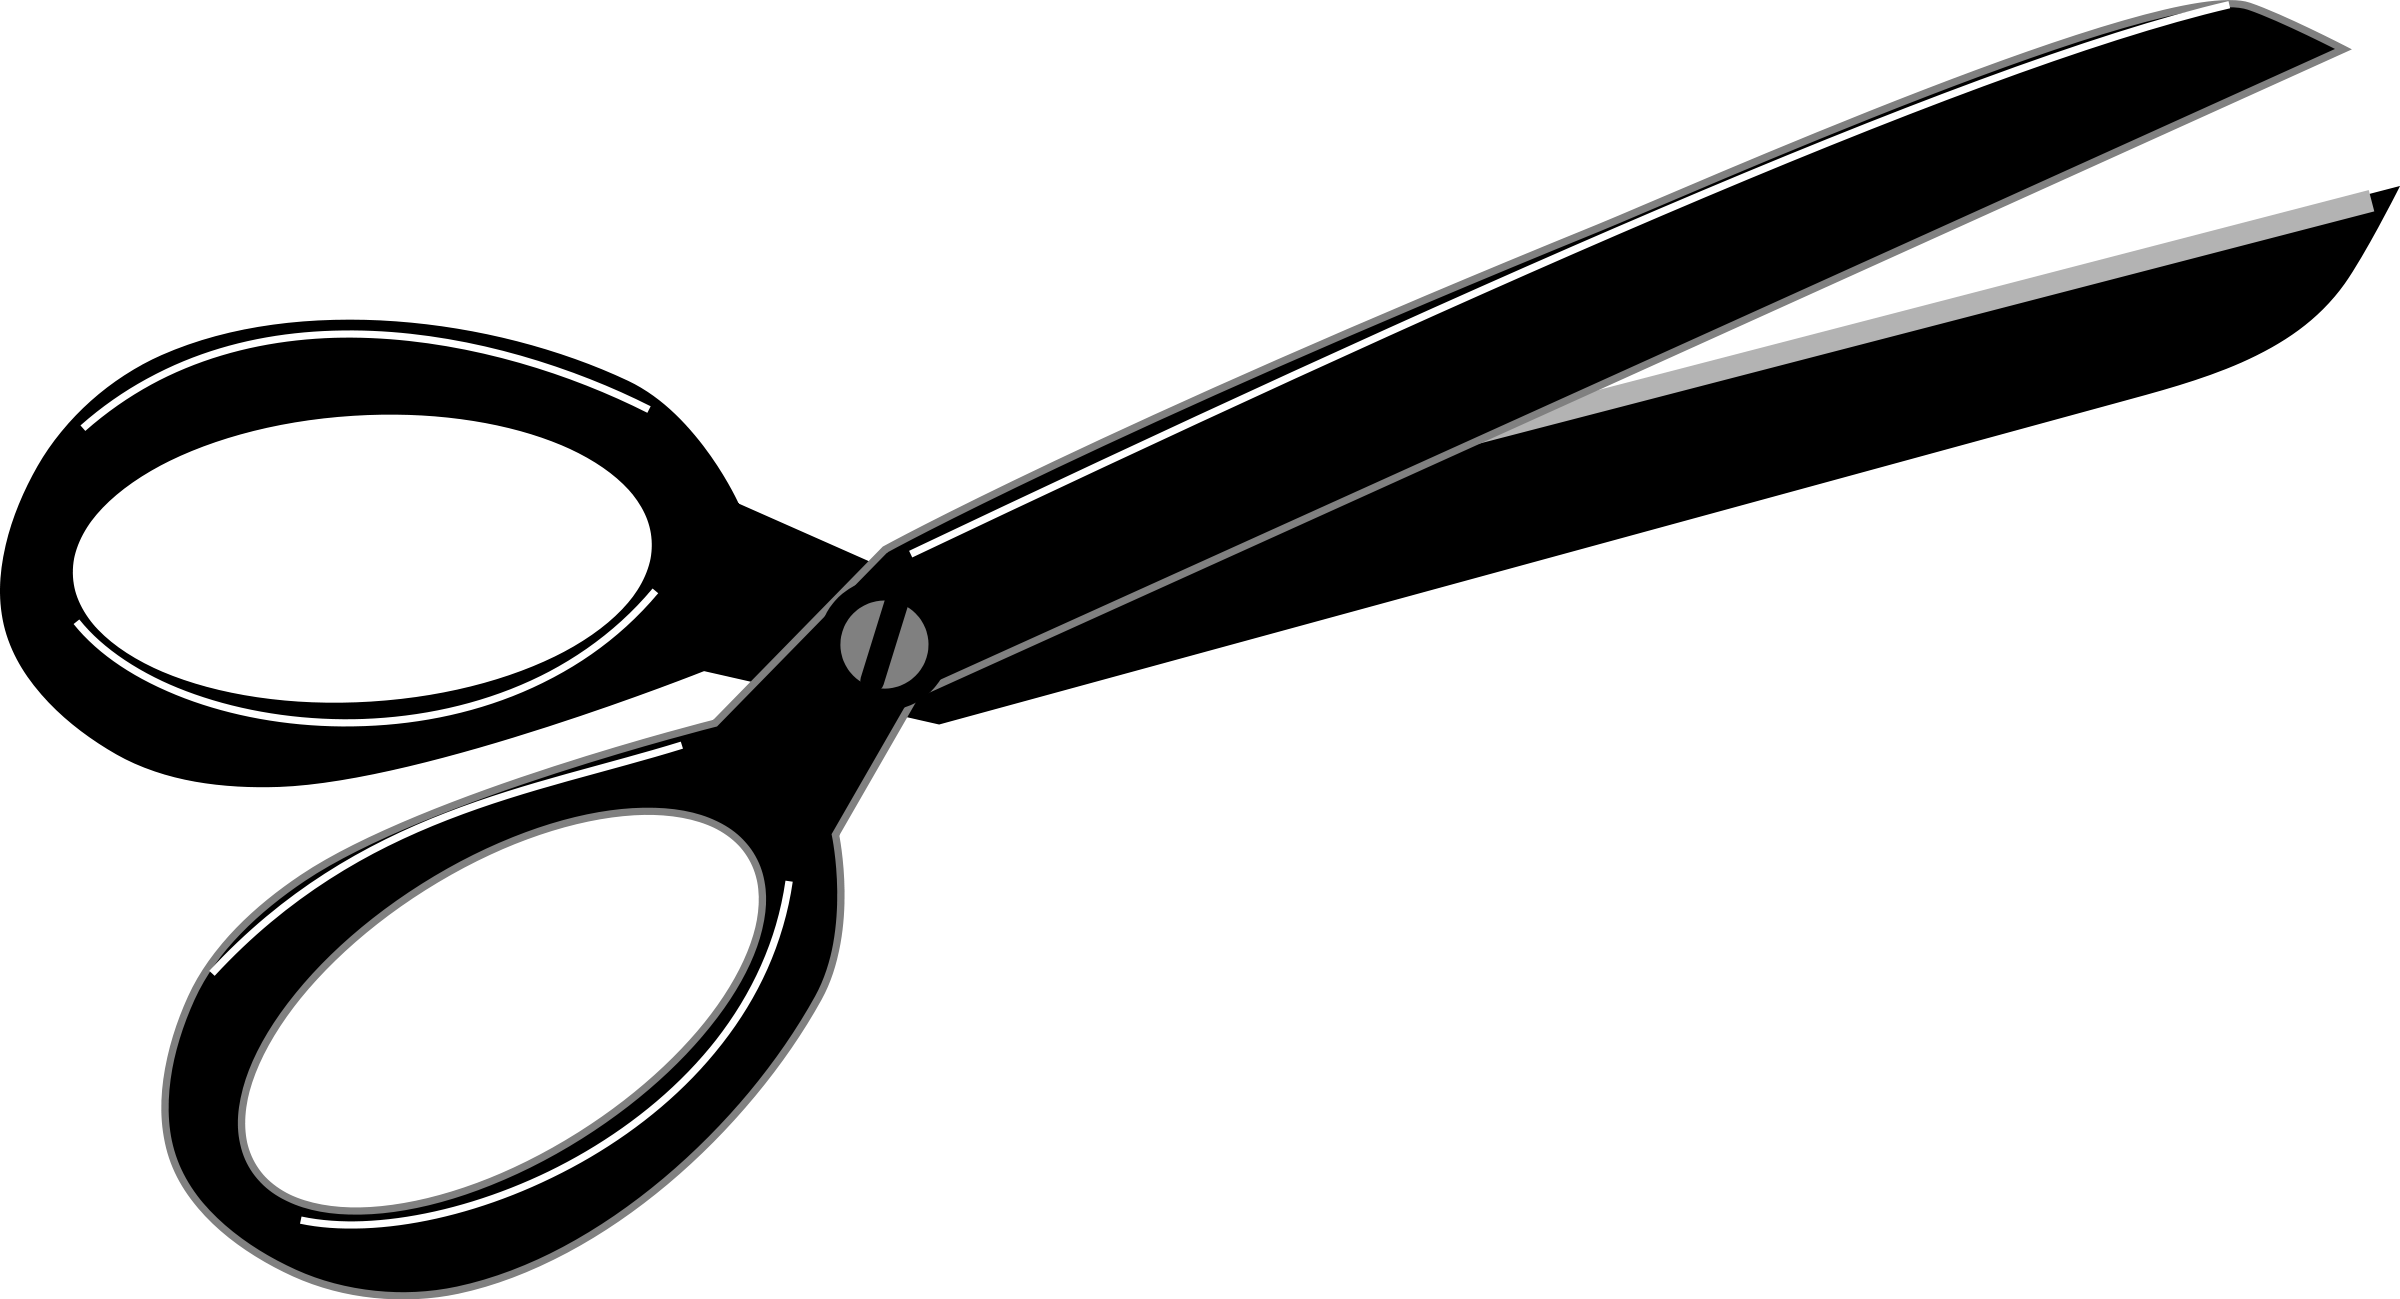 Scissor Clipart Black And White | Free download on ClipArtMag